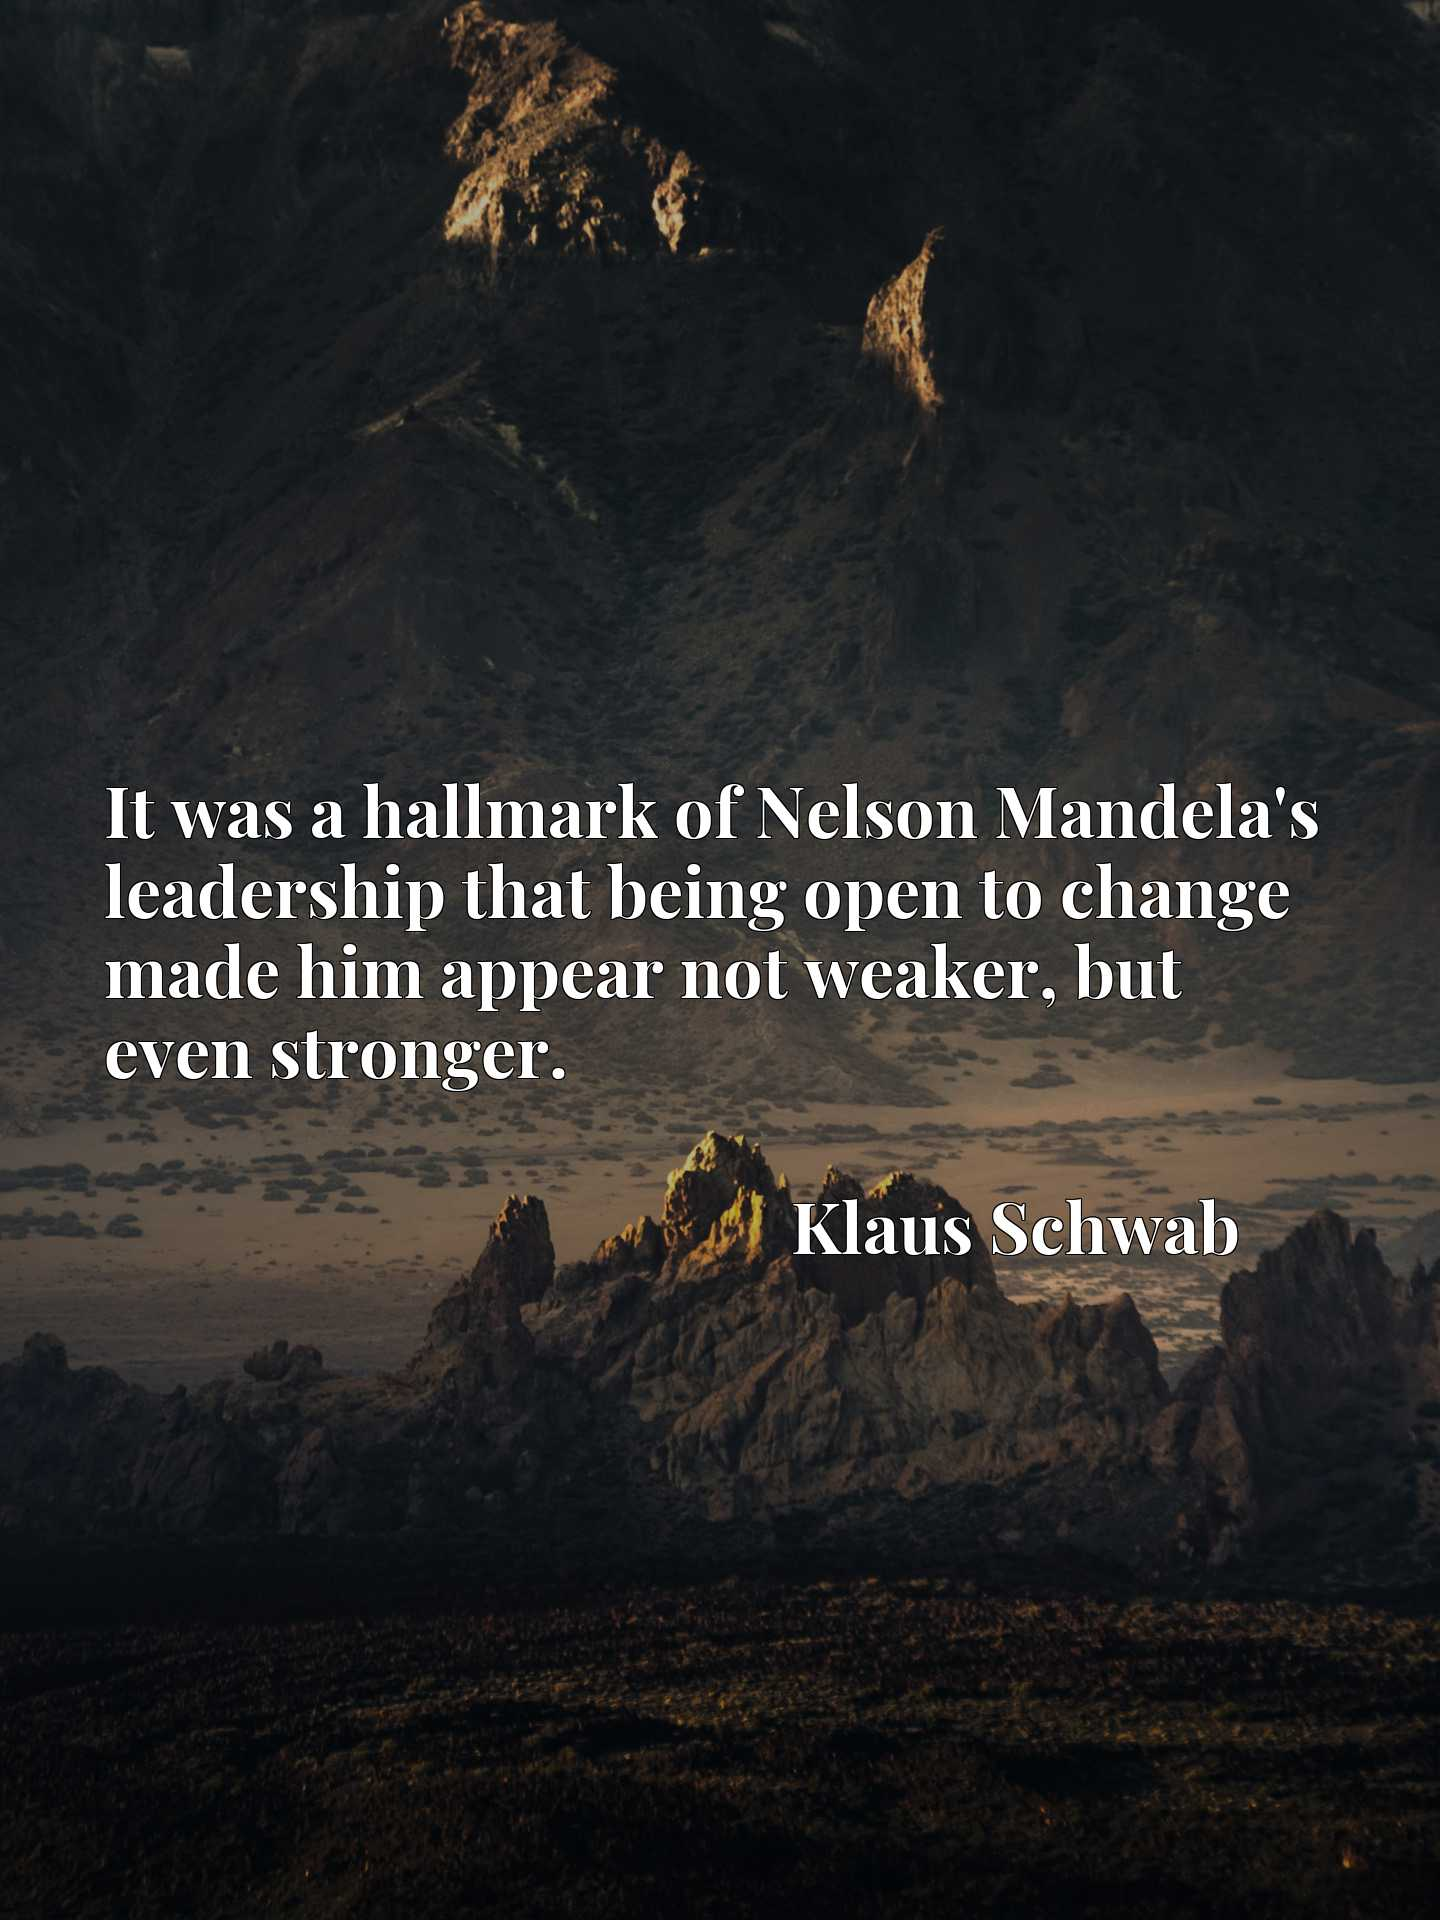 It was a hallmark of Nelson Mandela's leadership that being open to change made him appear not weaker, but even stronger.